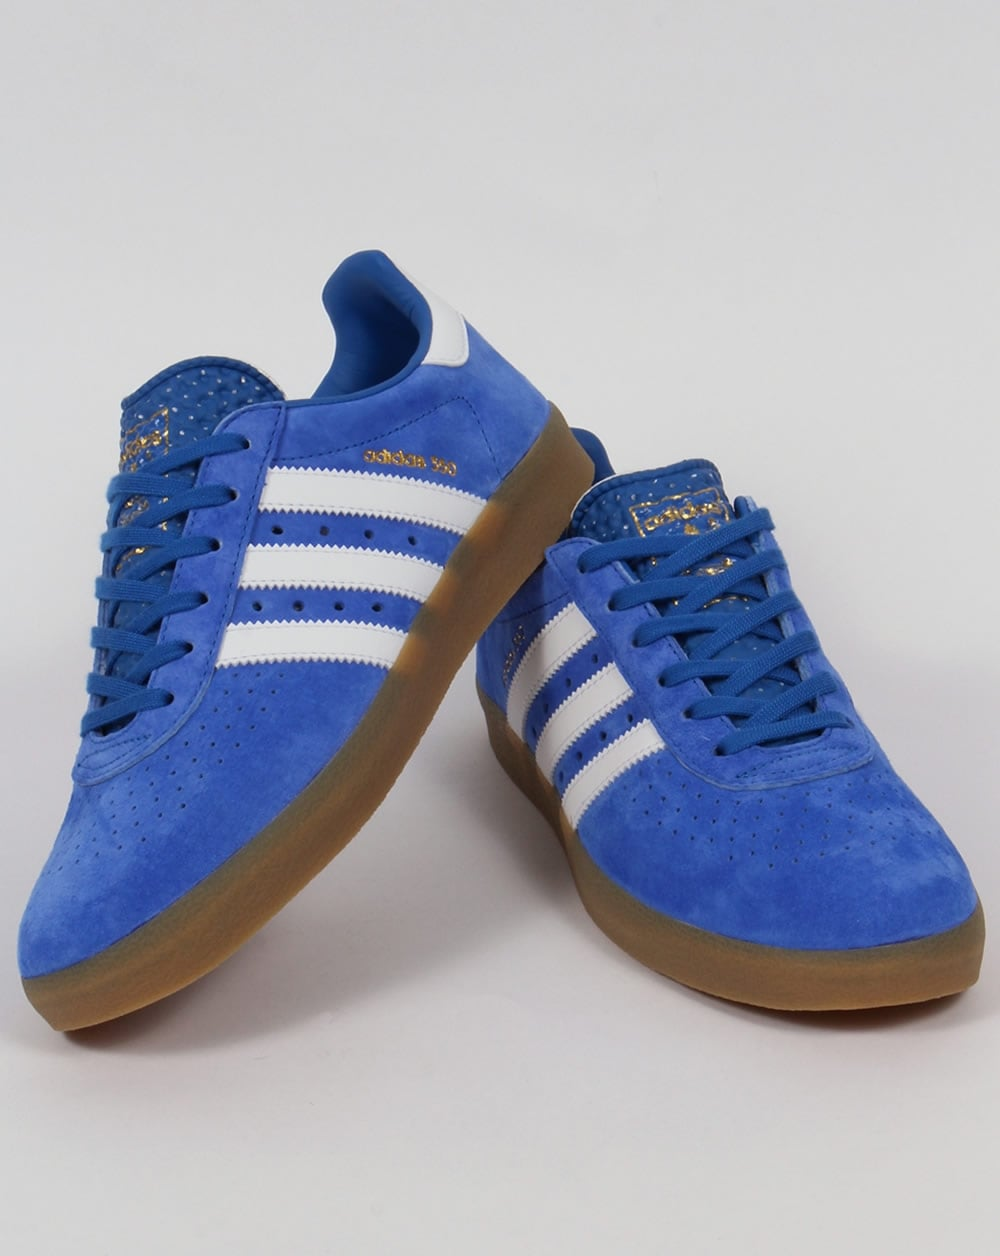 adidas shoes blue and white. adidas 350 trainers blue/white/gum shoes blue and white